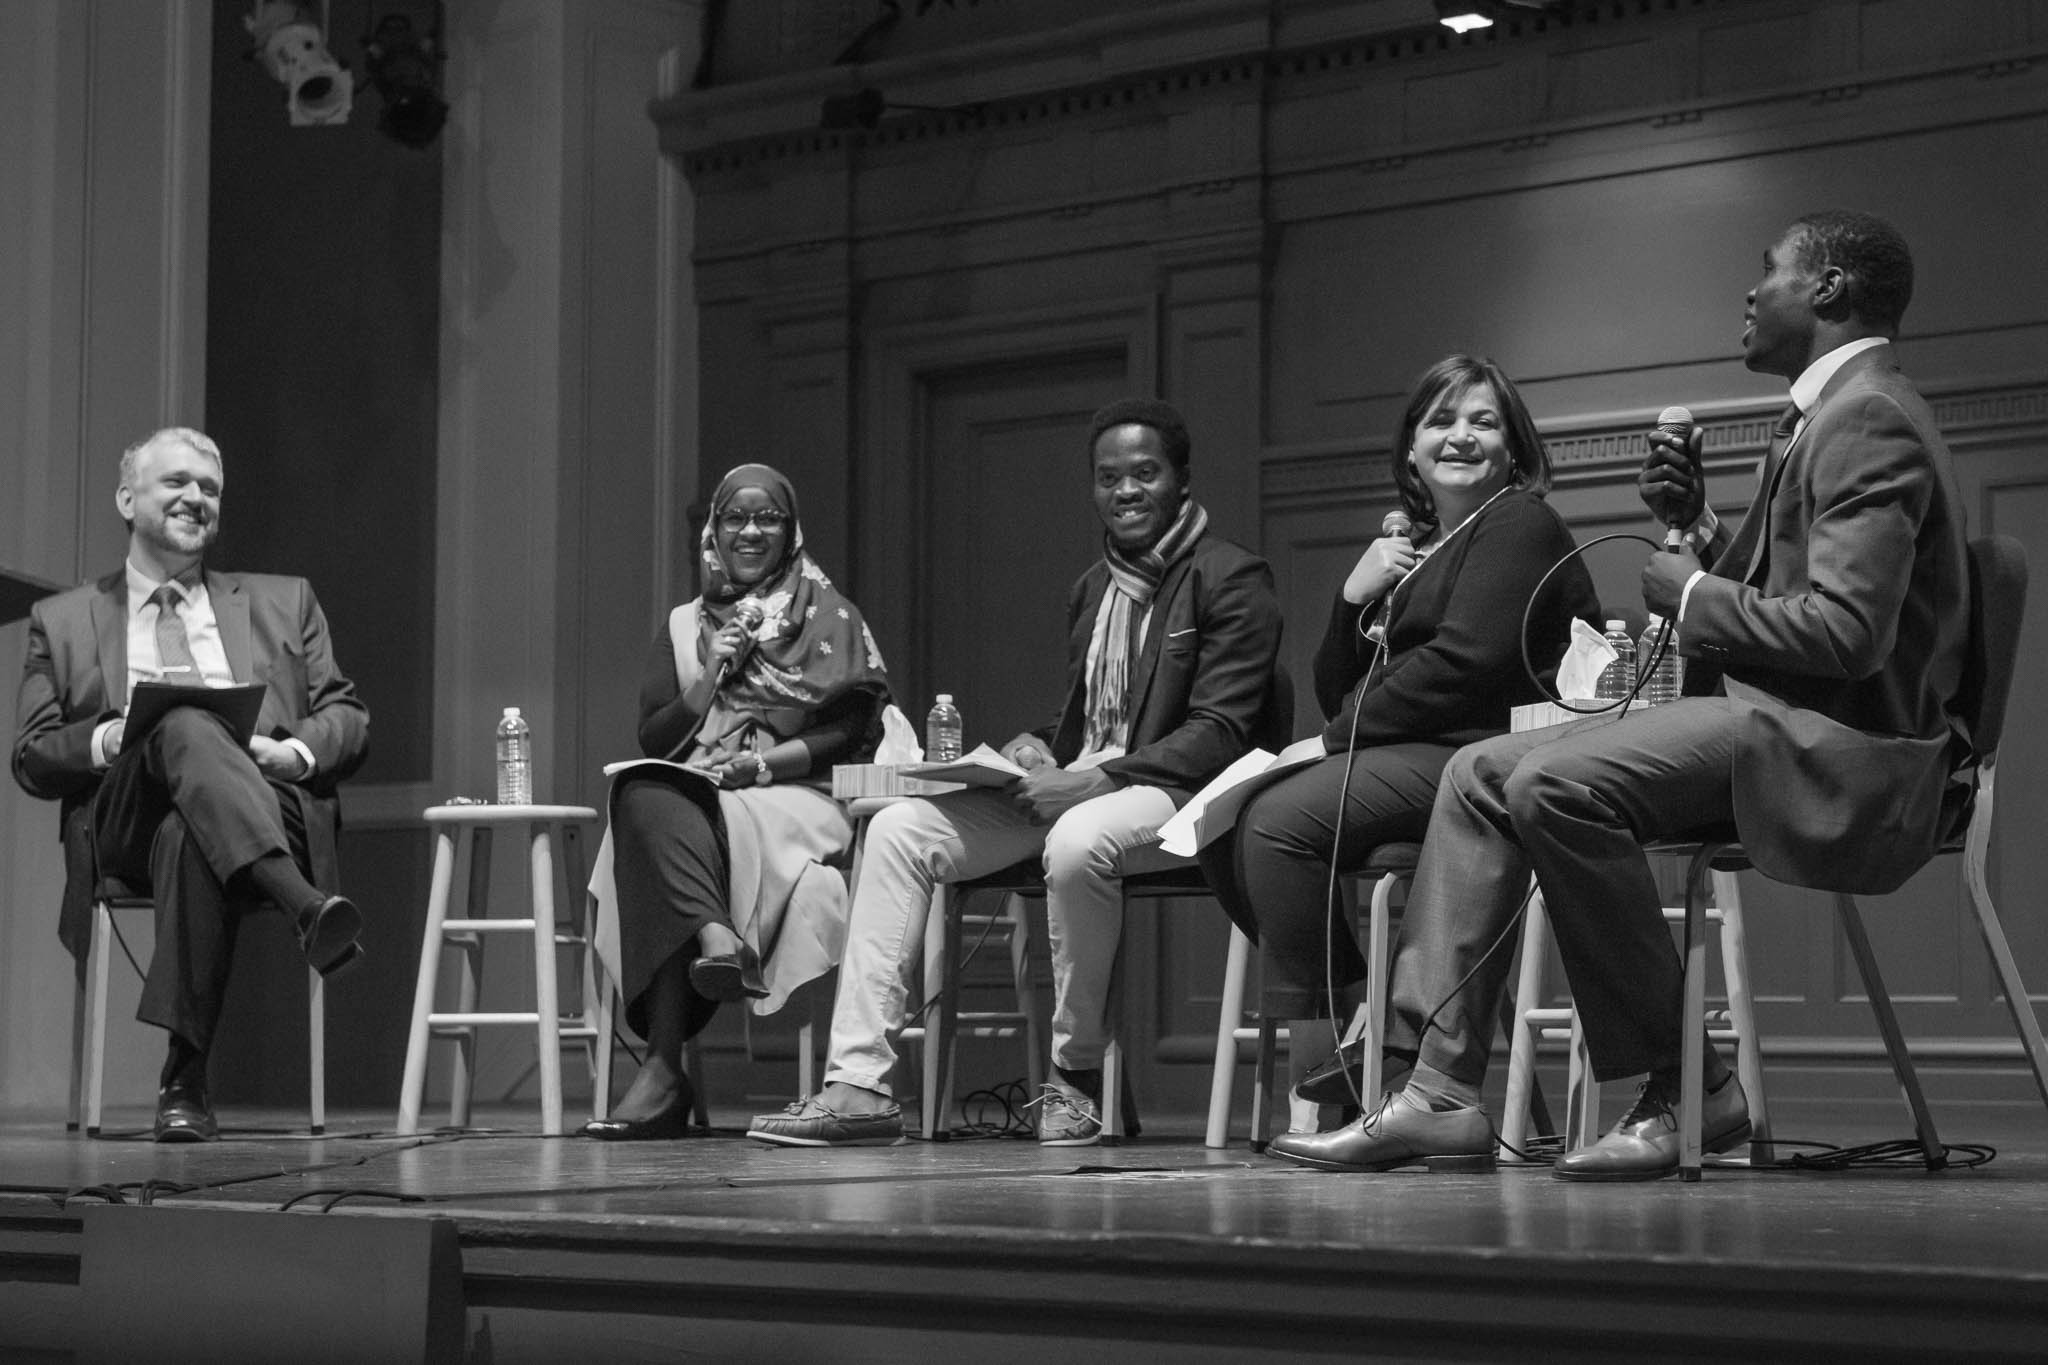 Displaced-Refugee-Voices-in-Conversation-Town-Hall-Seattle-1